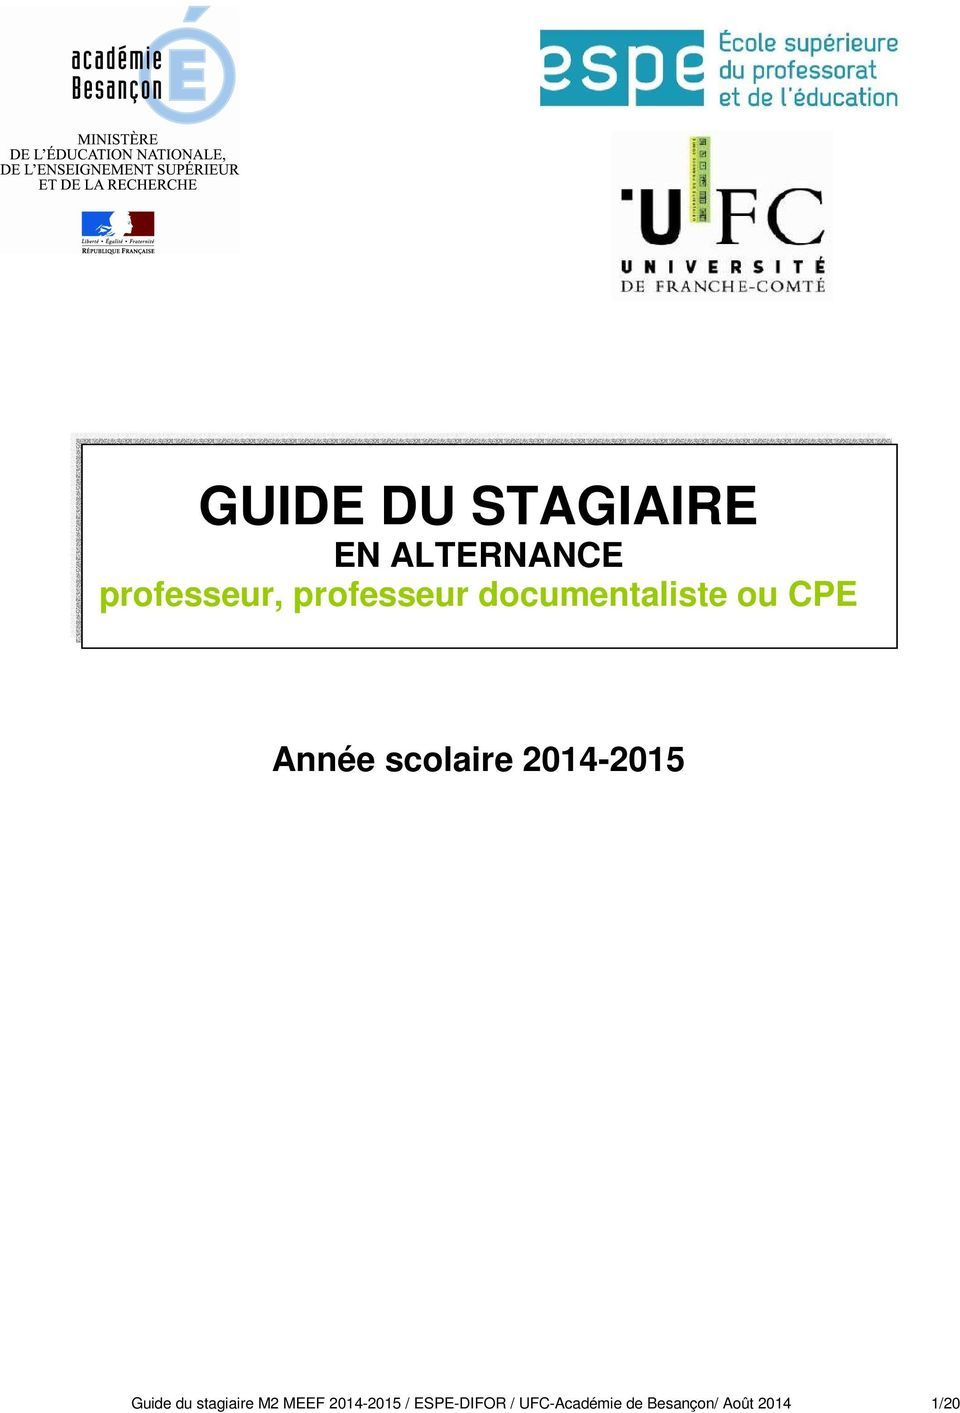 2014-2015 Guide du stagiaire M2 MEEF 2014-2015 /